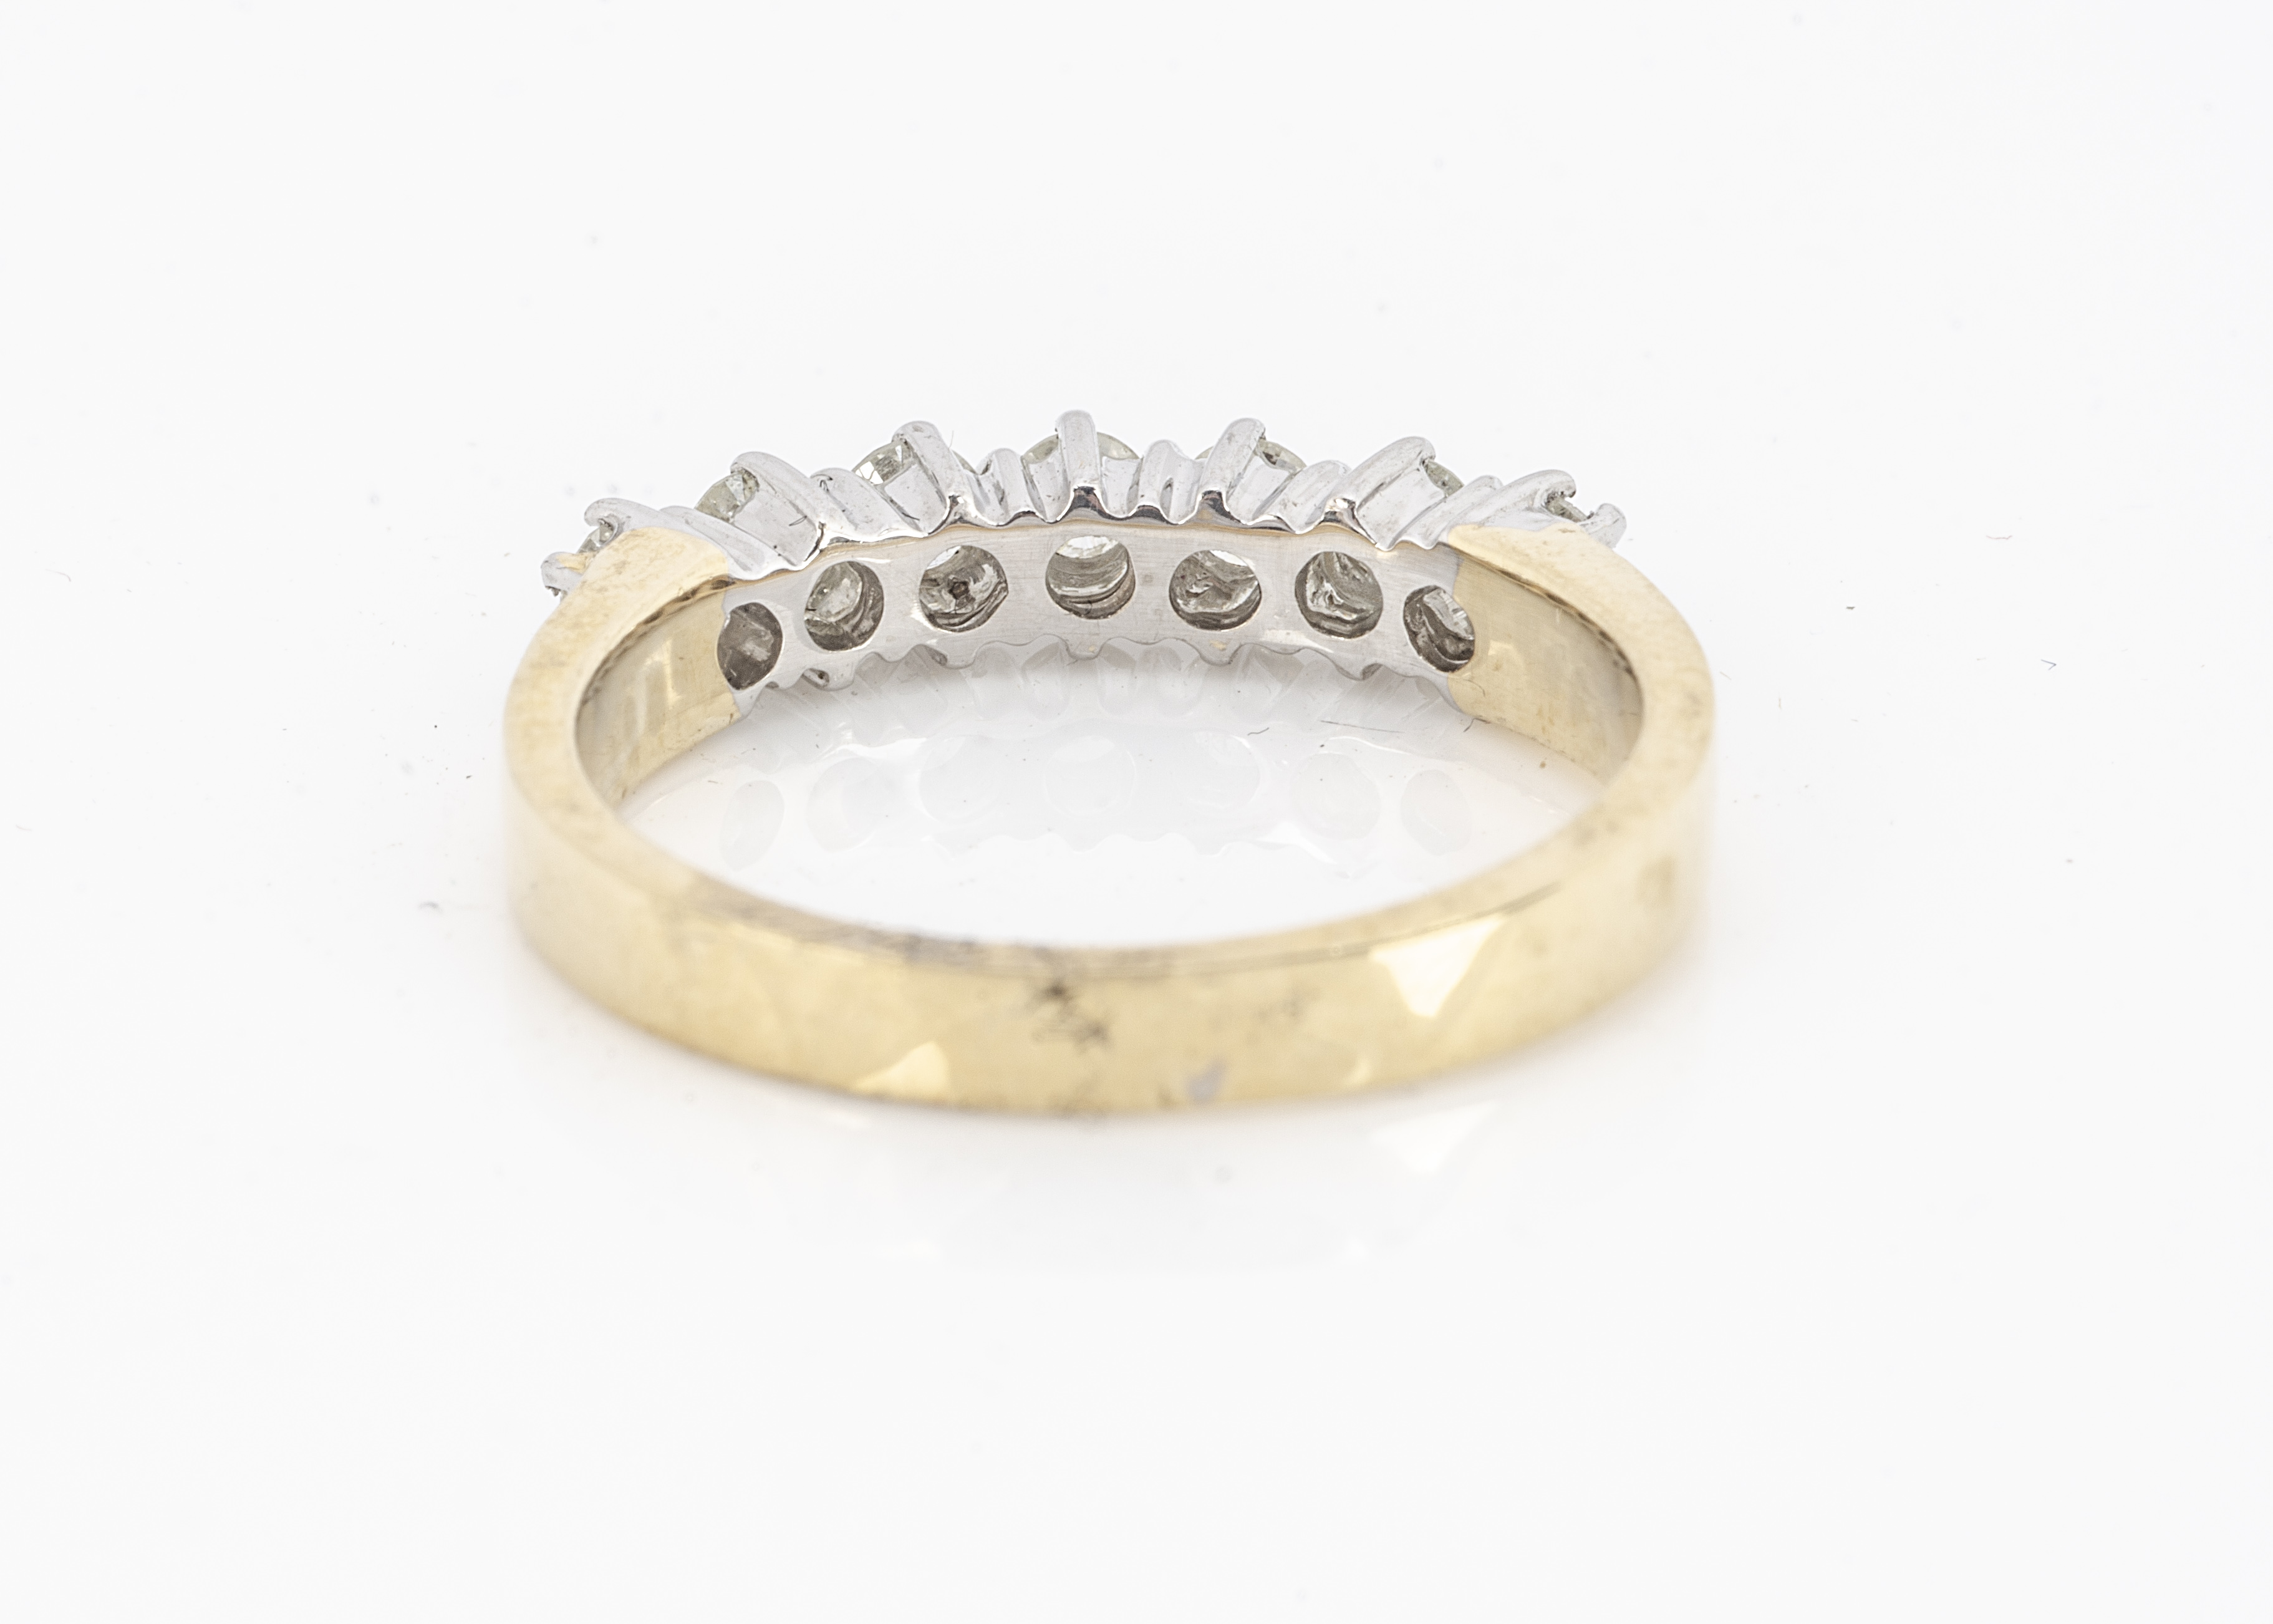 A certificated diamond seven stone dress ring, the seven brilliant cuts in claw setting, 18ct gold - Image 2 of 2